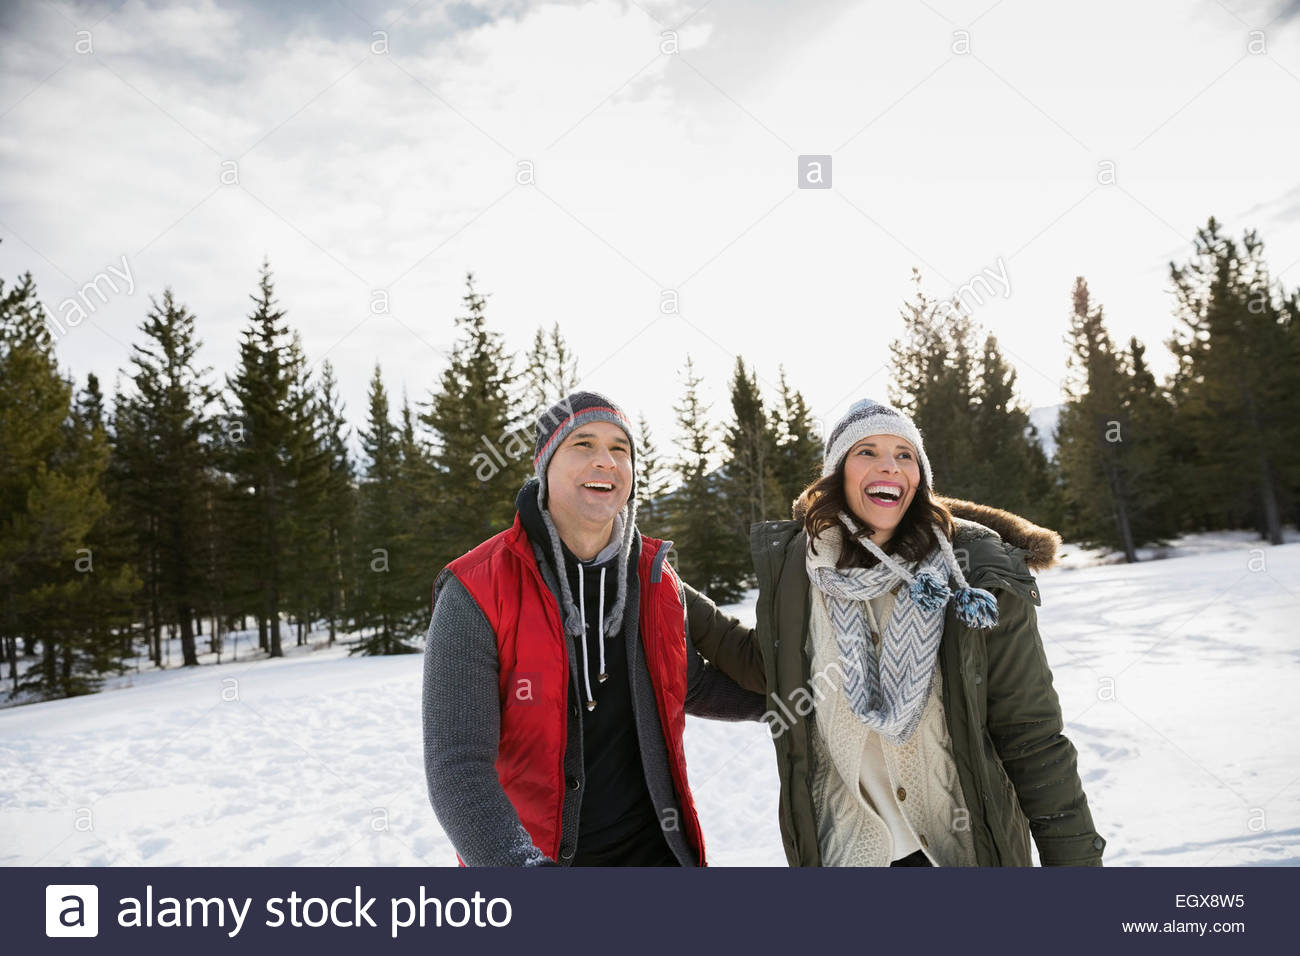 Smiling couple walking in snowy field - Stock Image